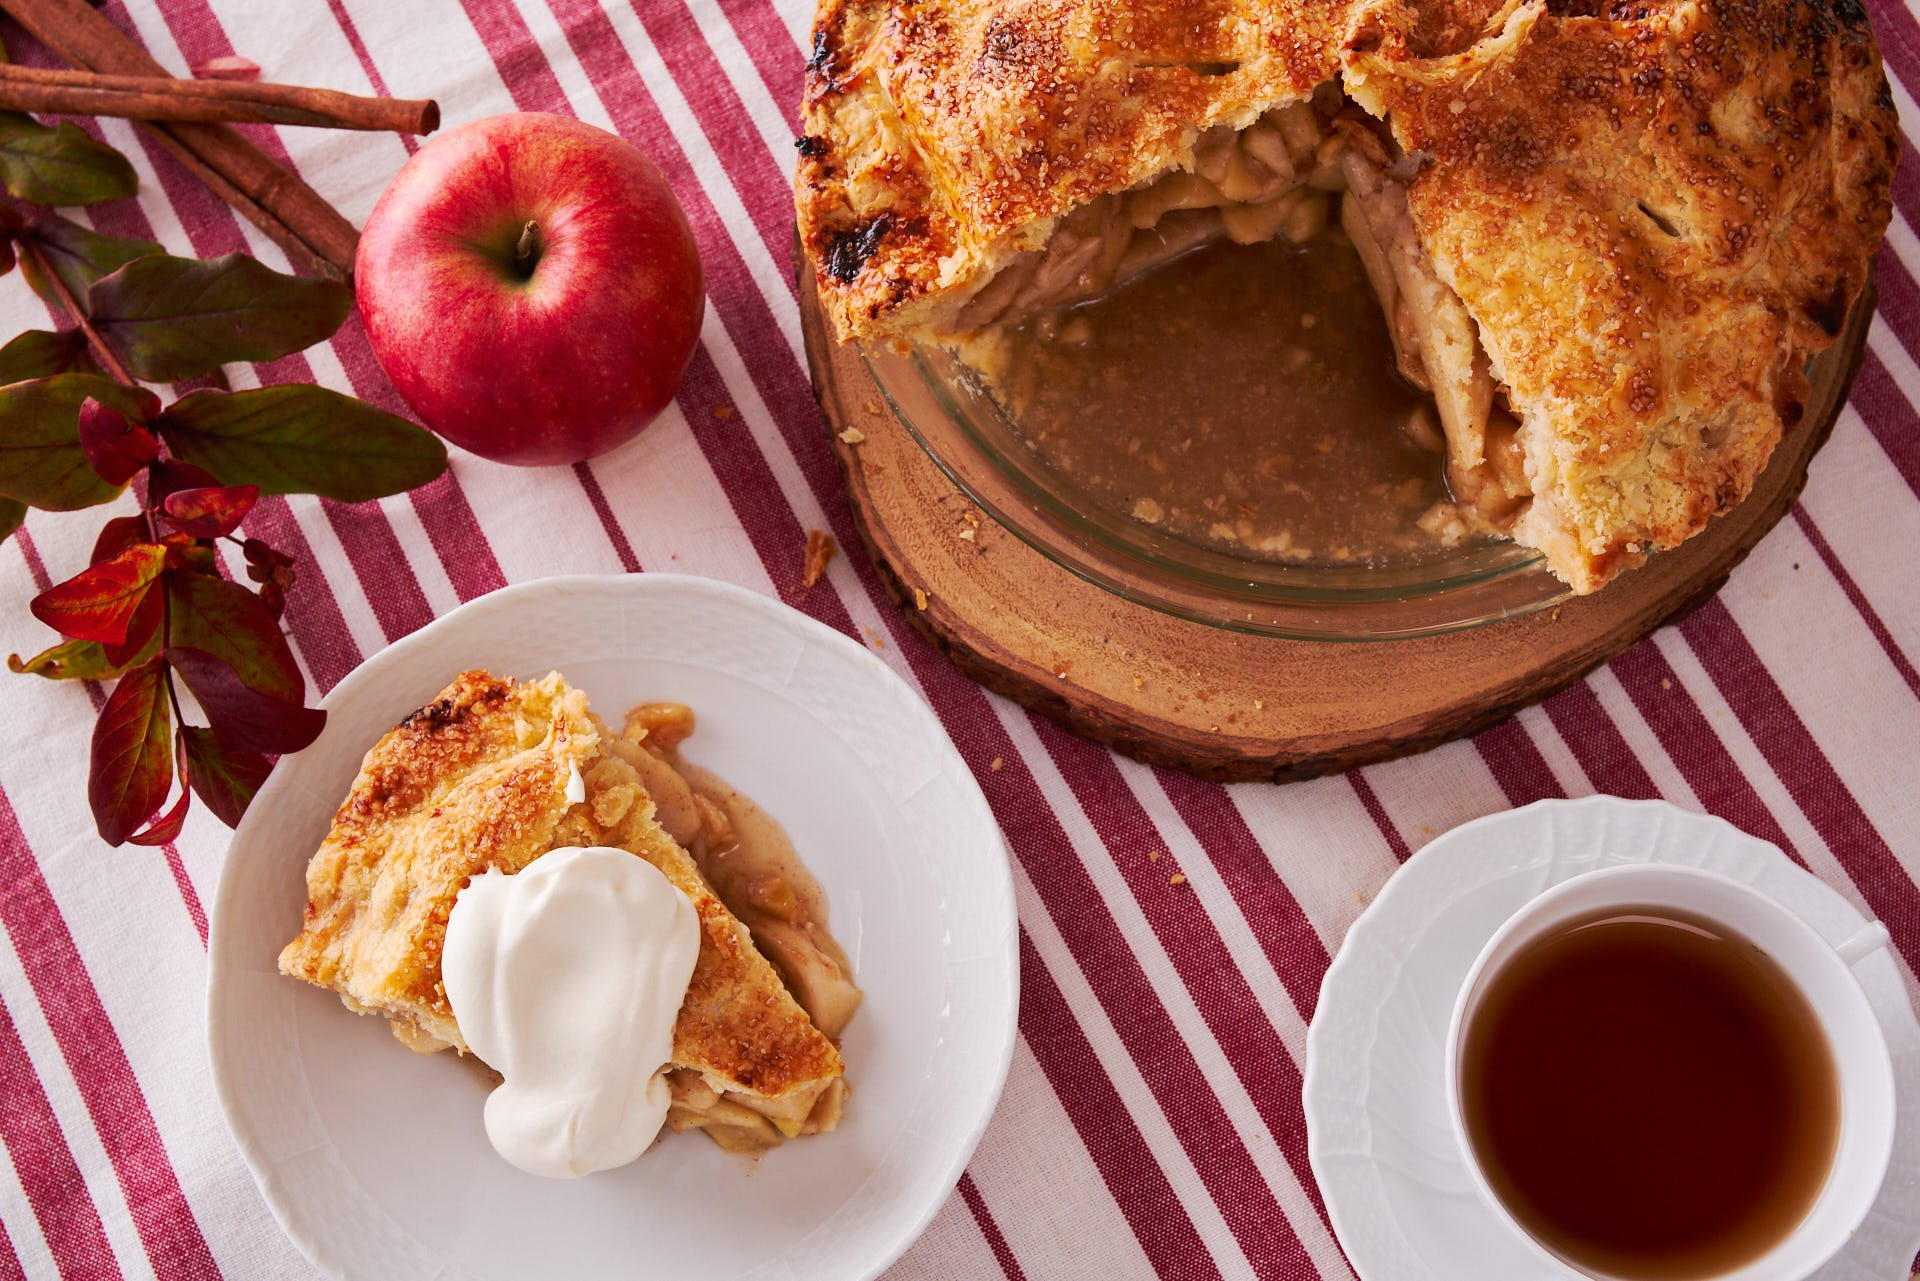 This recipe makes the best apple pie ever, with a flaky all-butter crust overstuffed with sweet autumn apples.